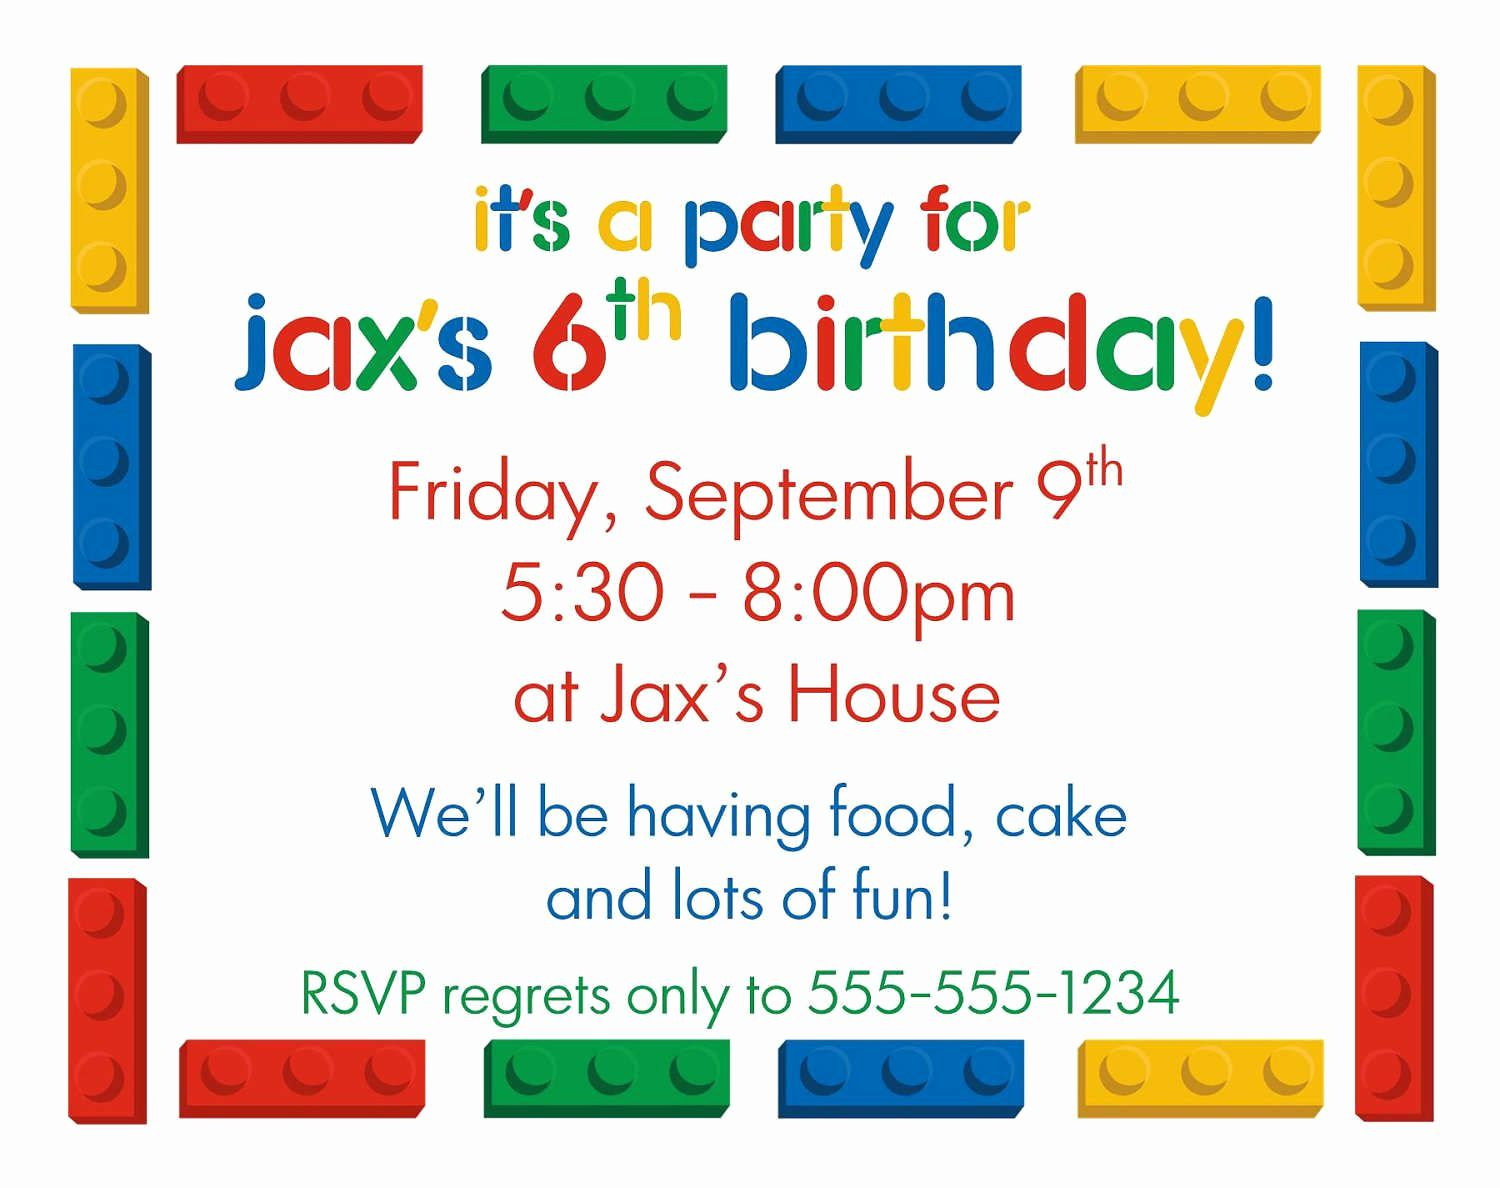 Google Docs Invitation Template Birthday party